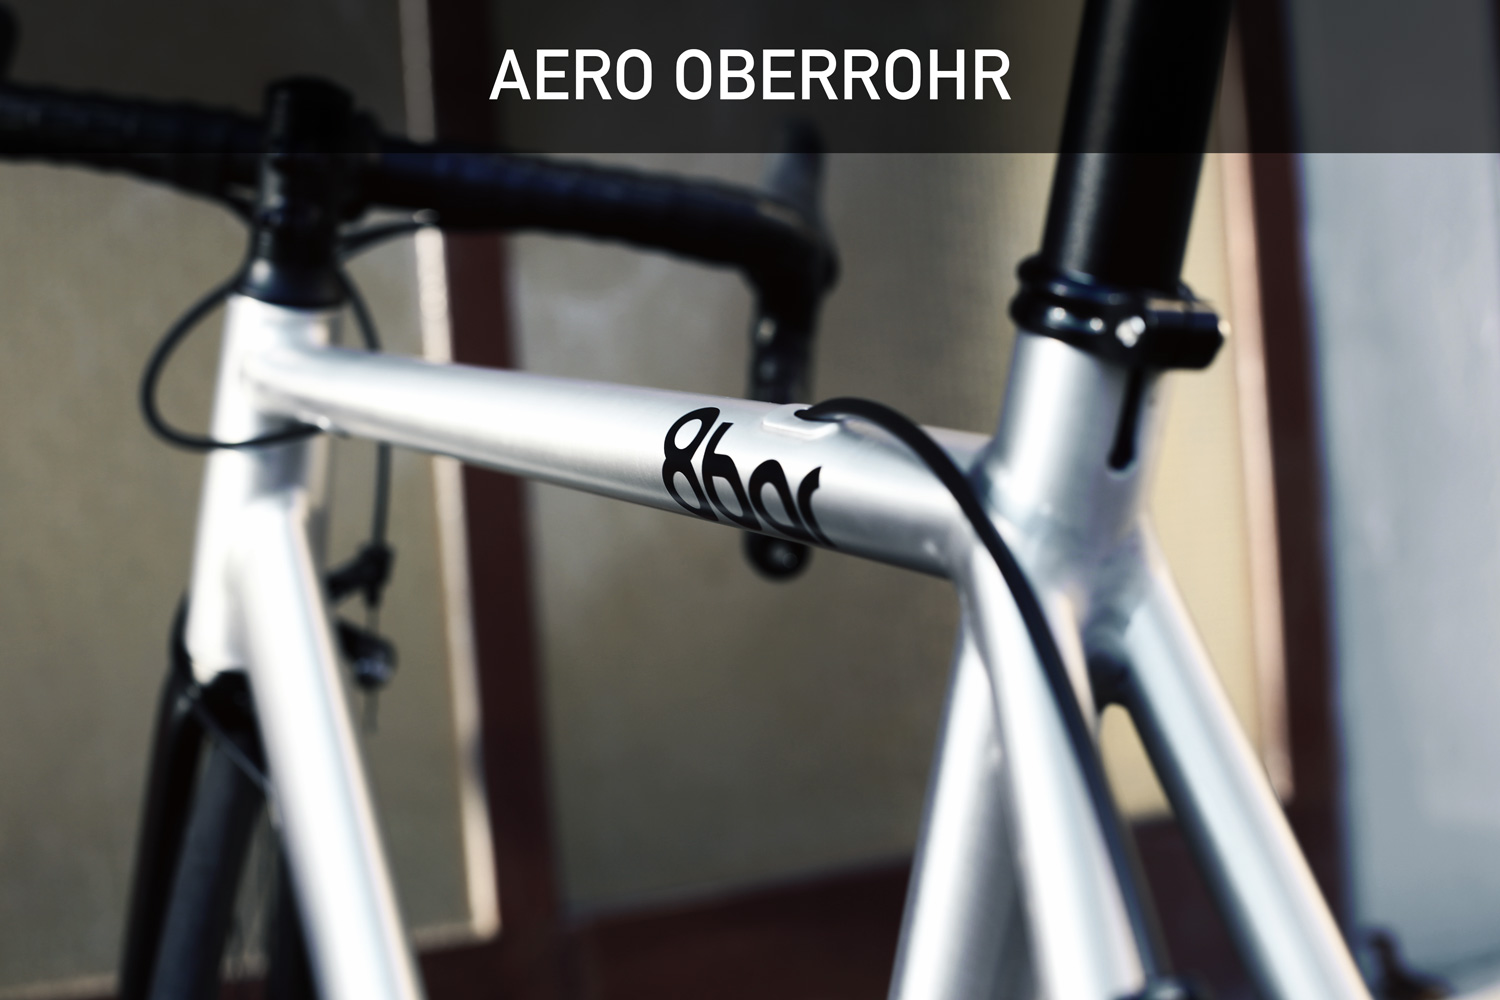 8bar-kronprinz-v2-road-bike-blog-aerotoptube-v4-de